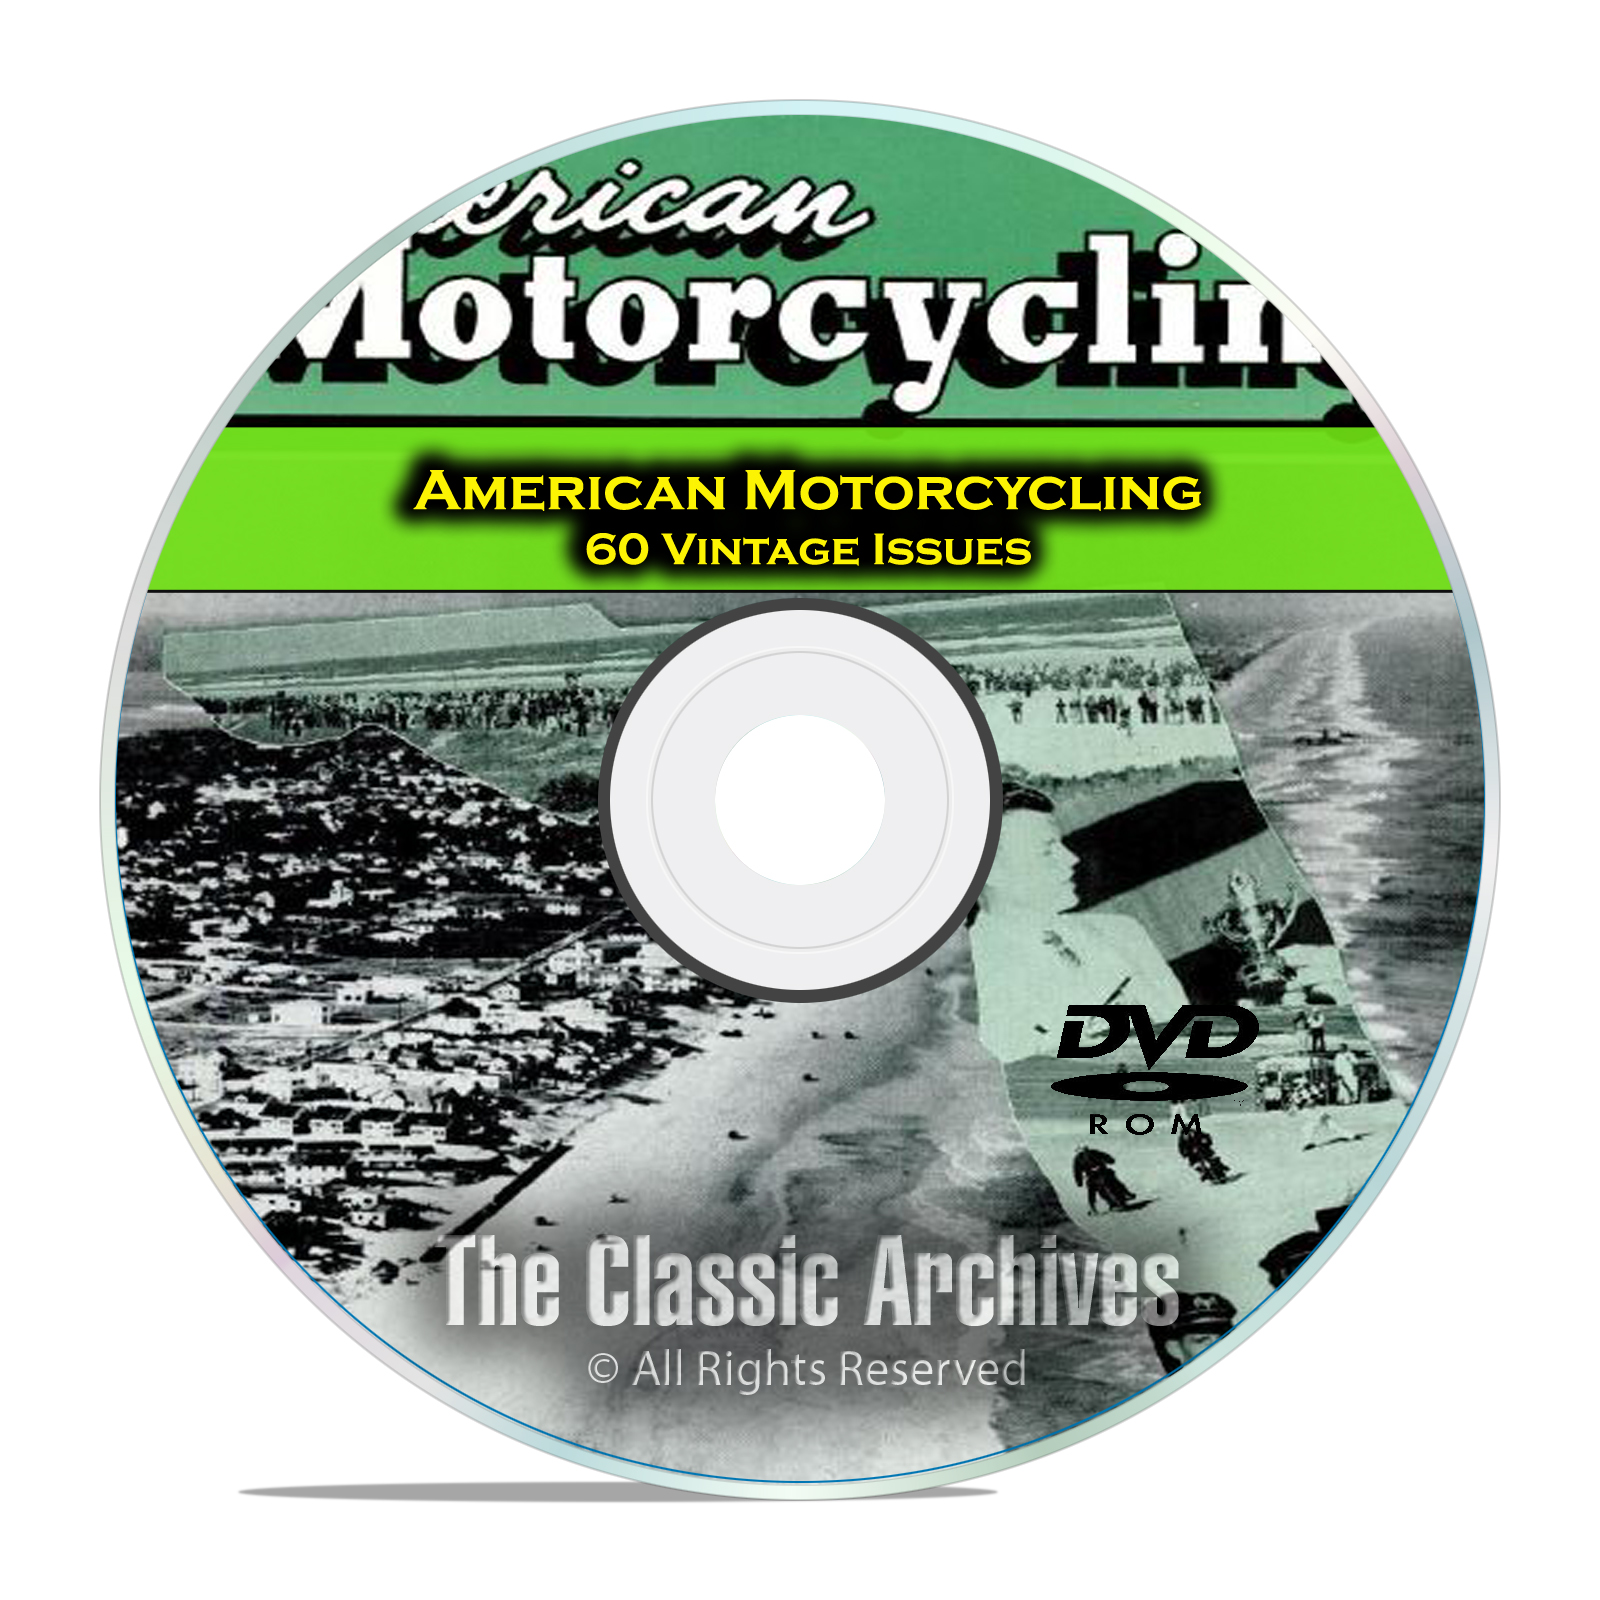 American Motorcycling Magazine, 60 Issues, 1955-1959, Americana History DVD